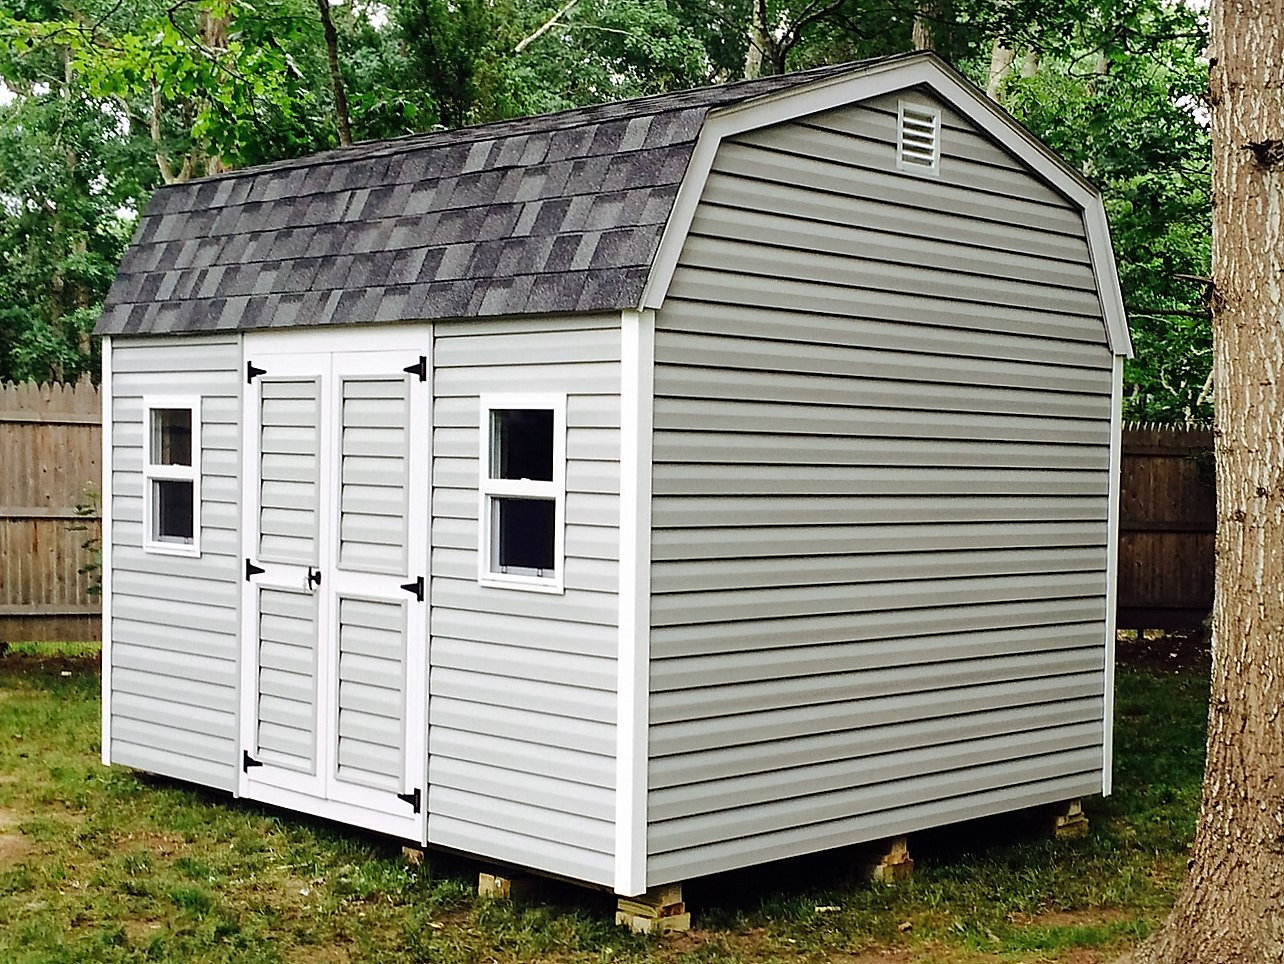 barn style doors for shed sliding barn door open revealing glass barn style shed 2 singlehung windows a double door that locks cape cod grey horizontal siding roof color charcoal grey dualventing